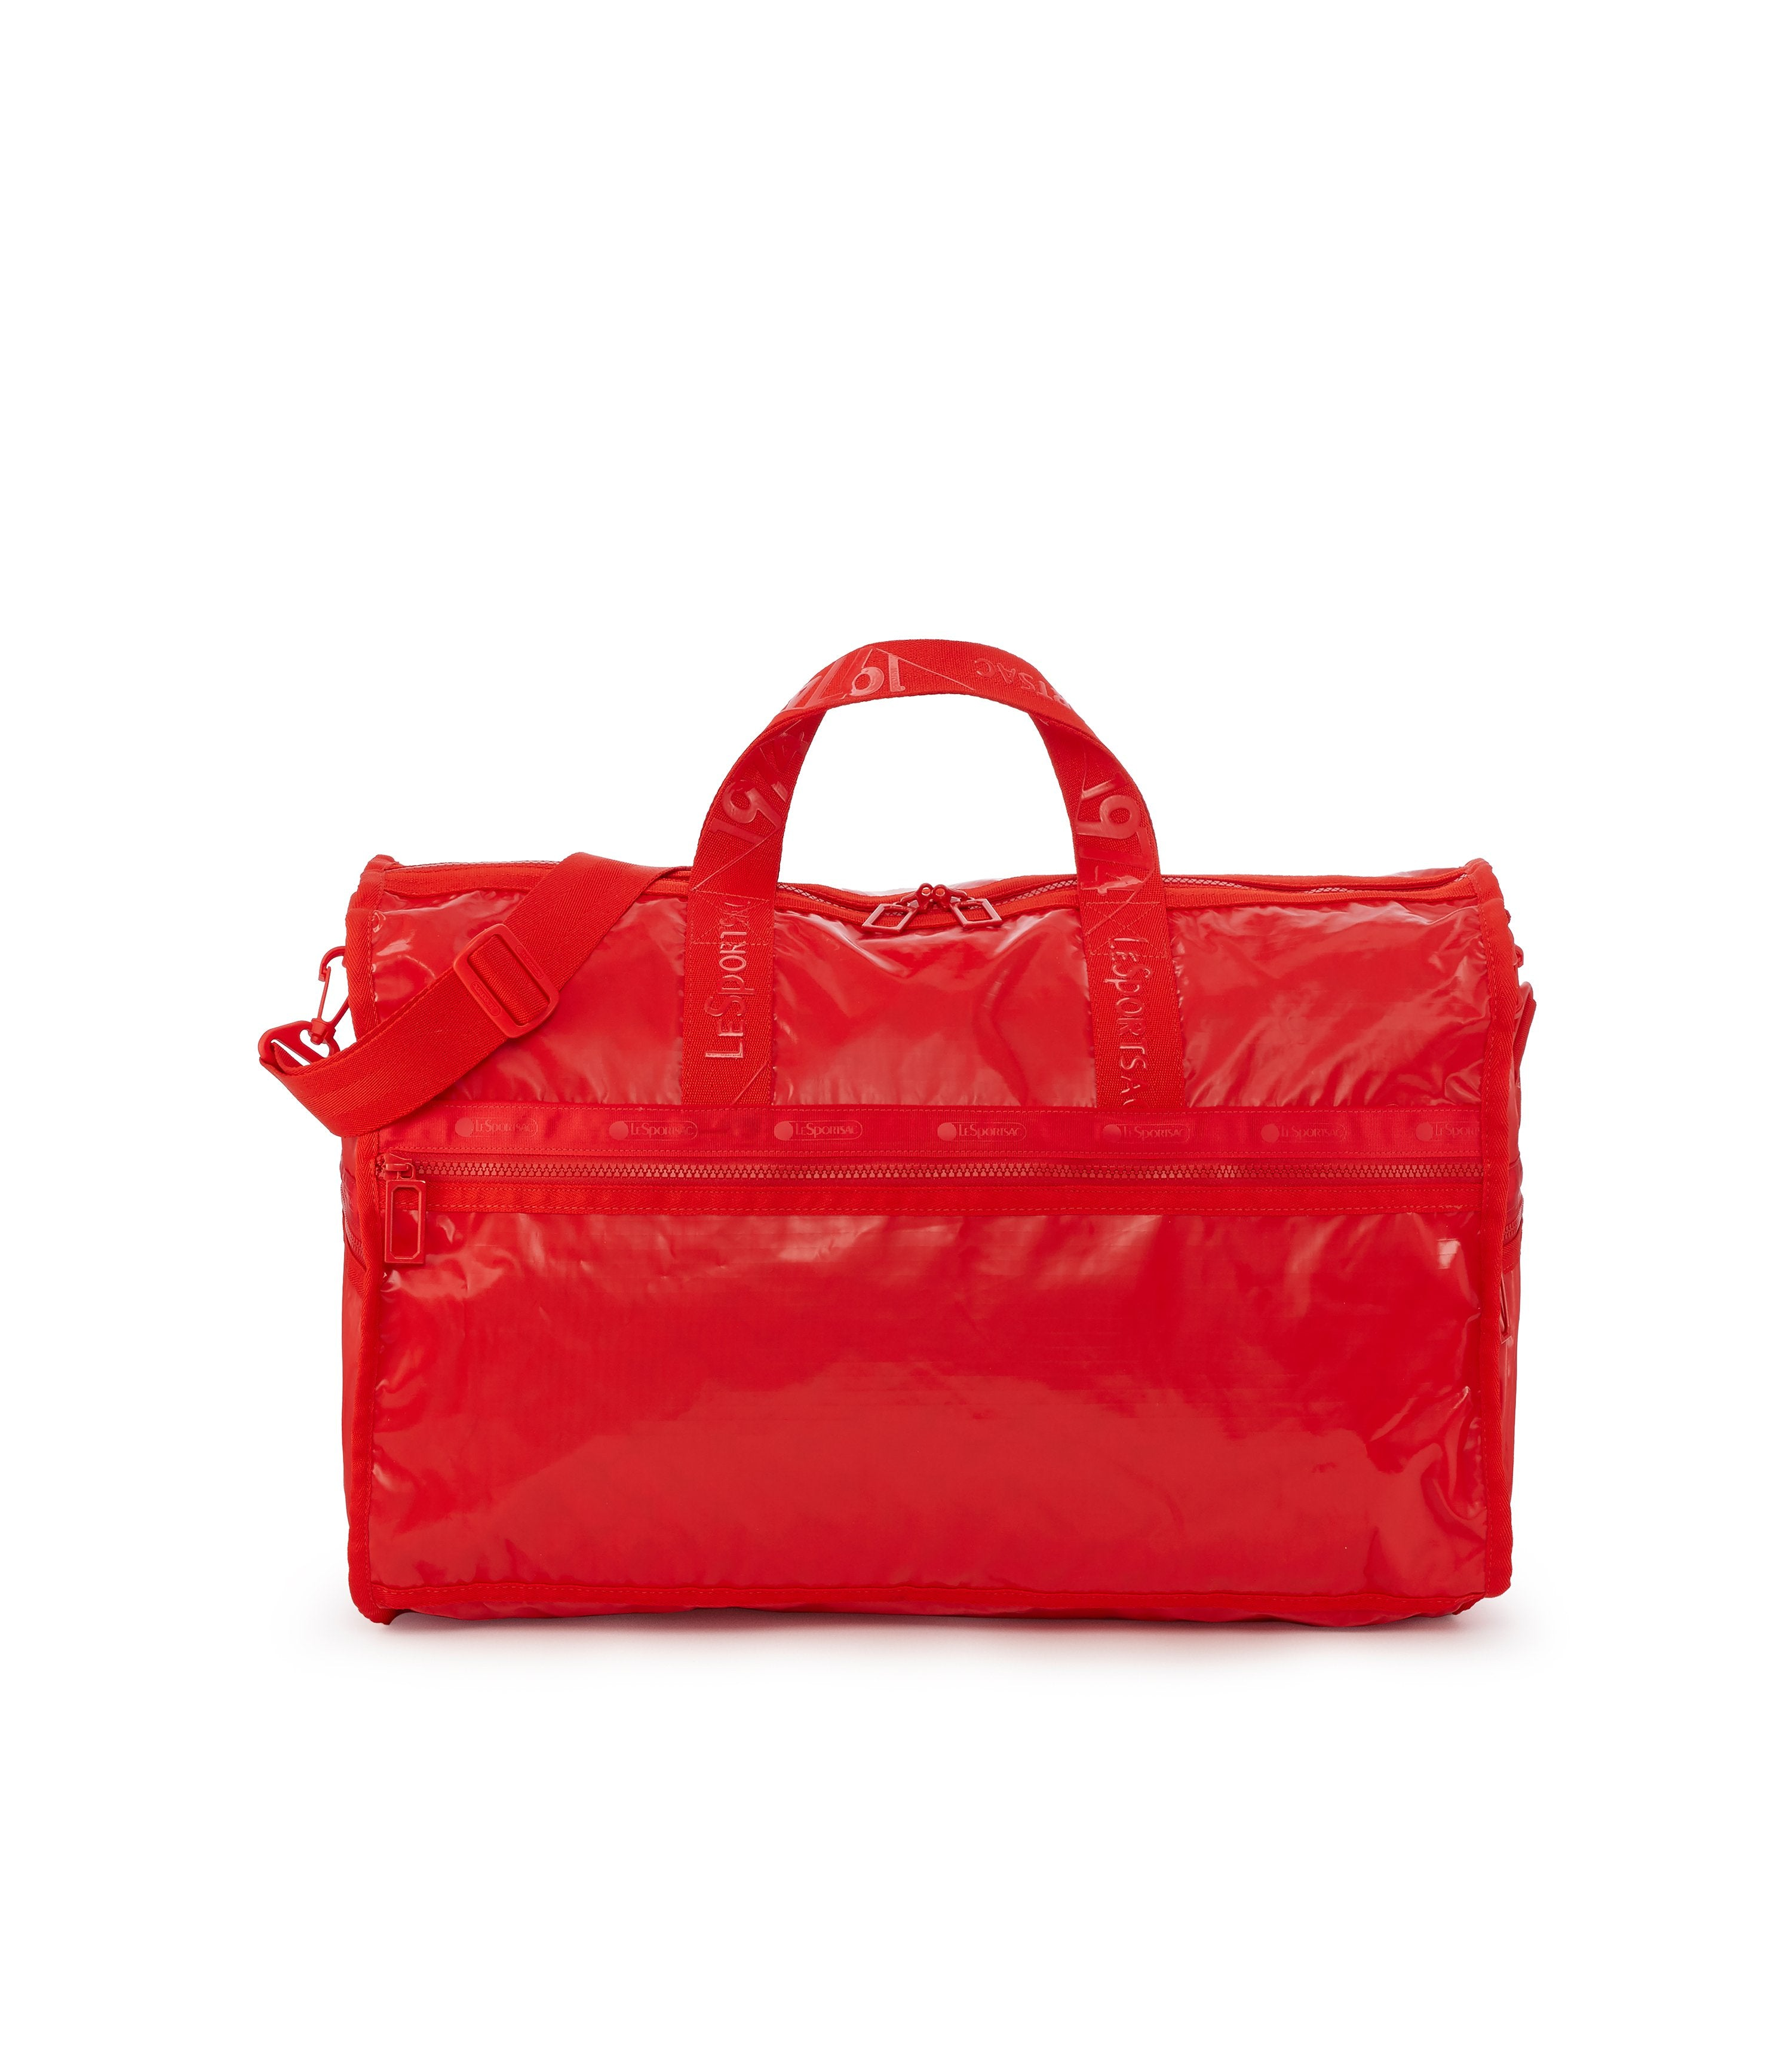 Large Weekender Bags, Duffle Bags, Carry-on, LeSportsac, Classic, Red Patent